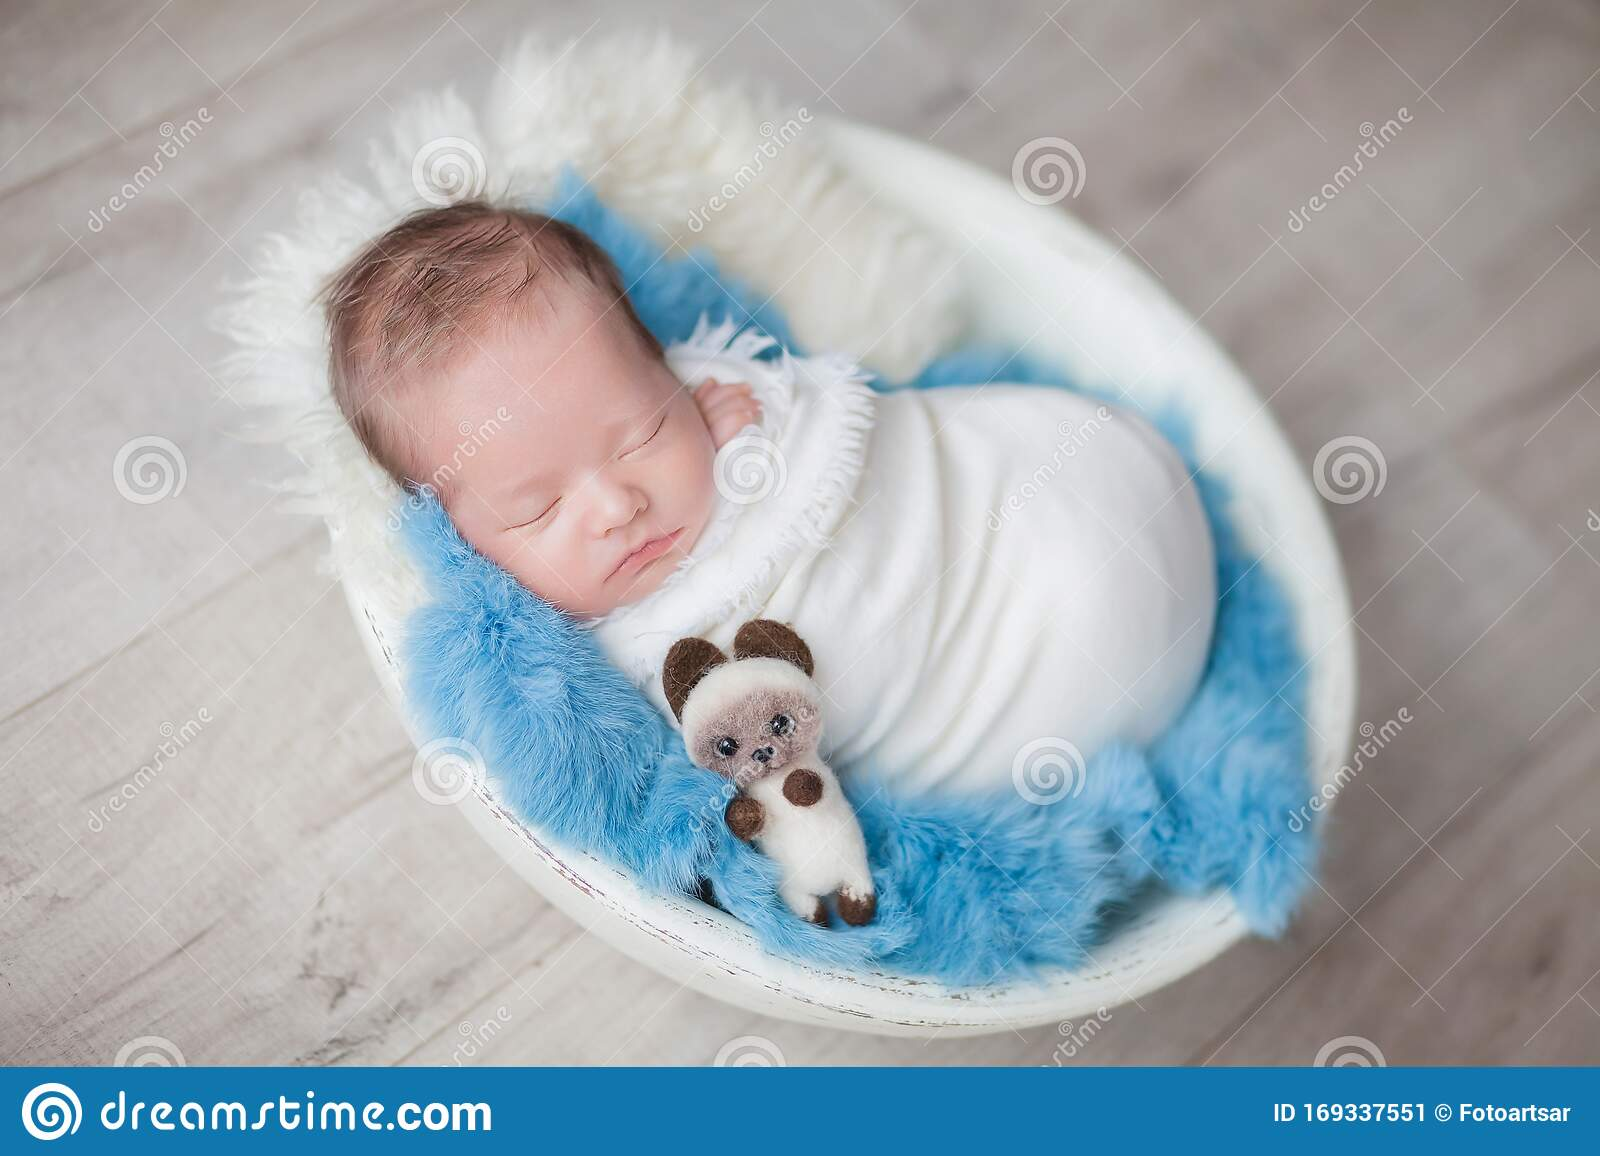 Newborn Baby Boy In A Cocoon In A White Bowl On A Blue Rug Stock Image Image Of Sweet Newborn 169337551